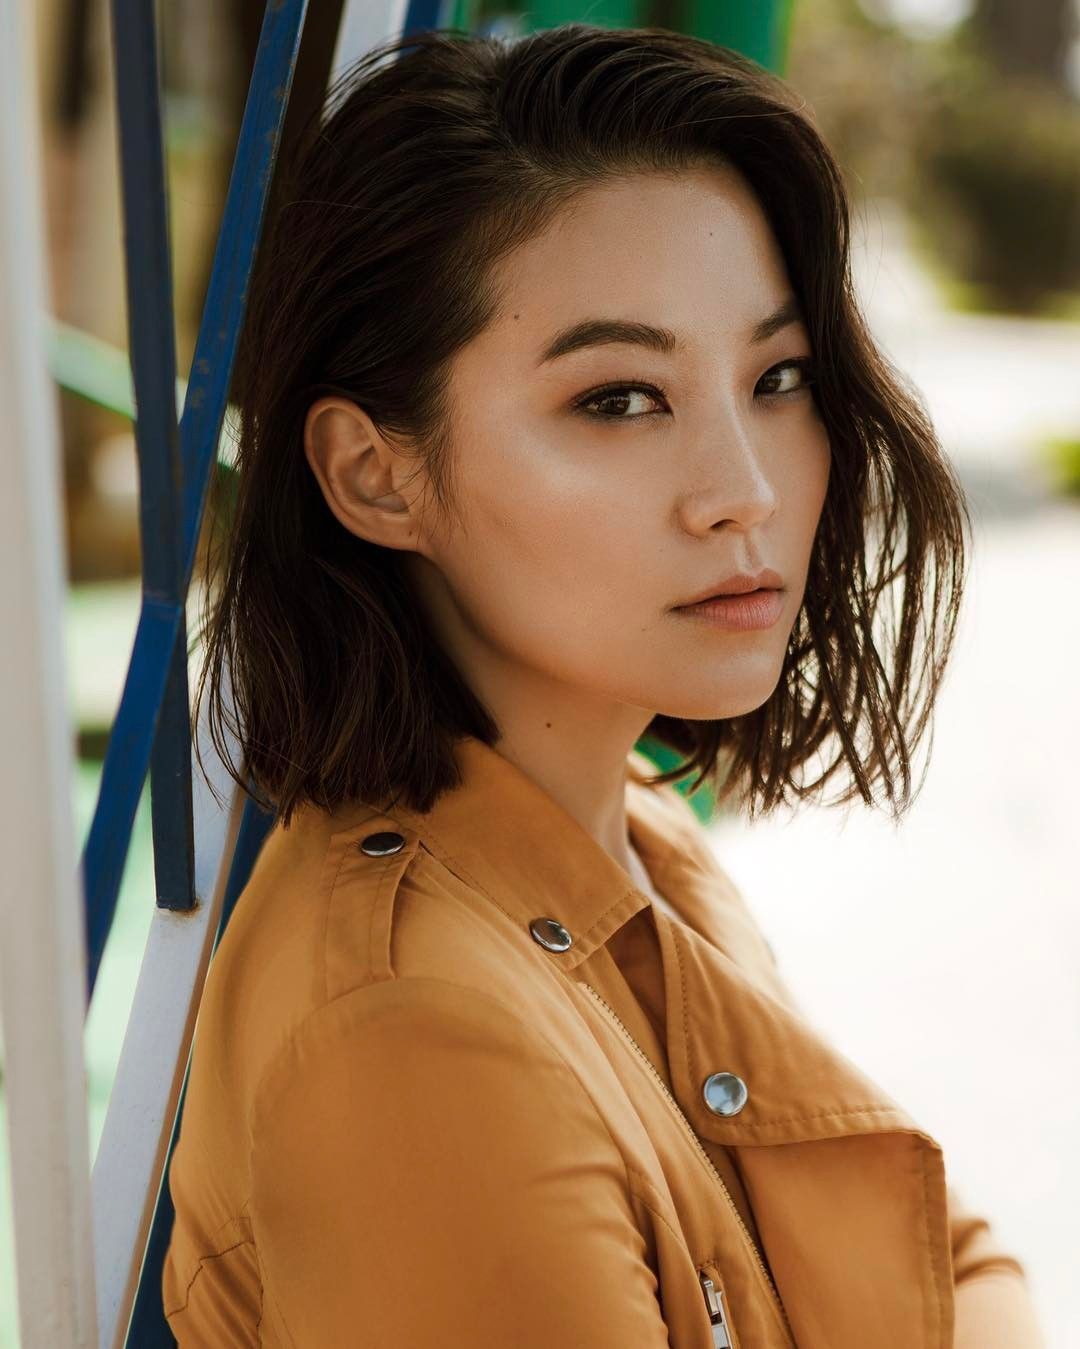 Forum on this topic: Chen Hao, arden-cho/